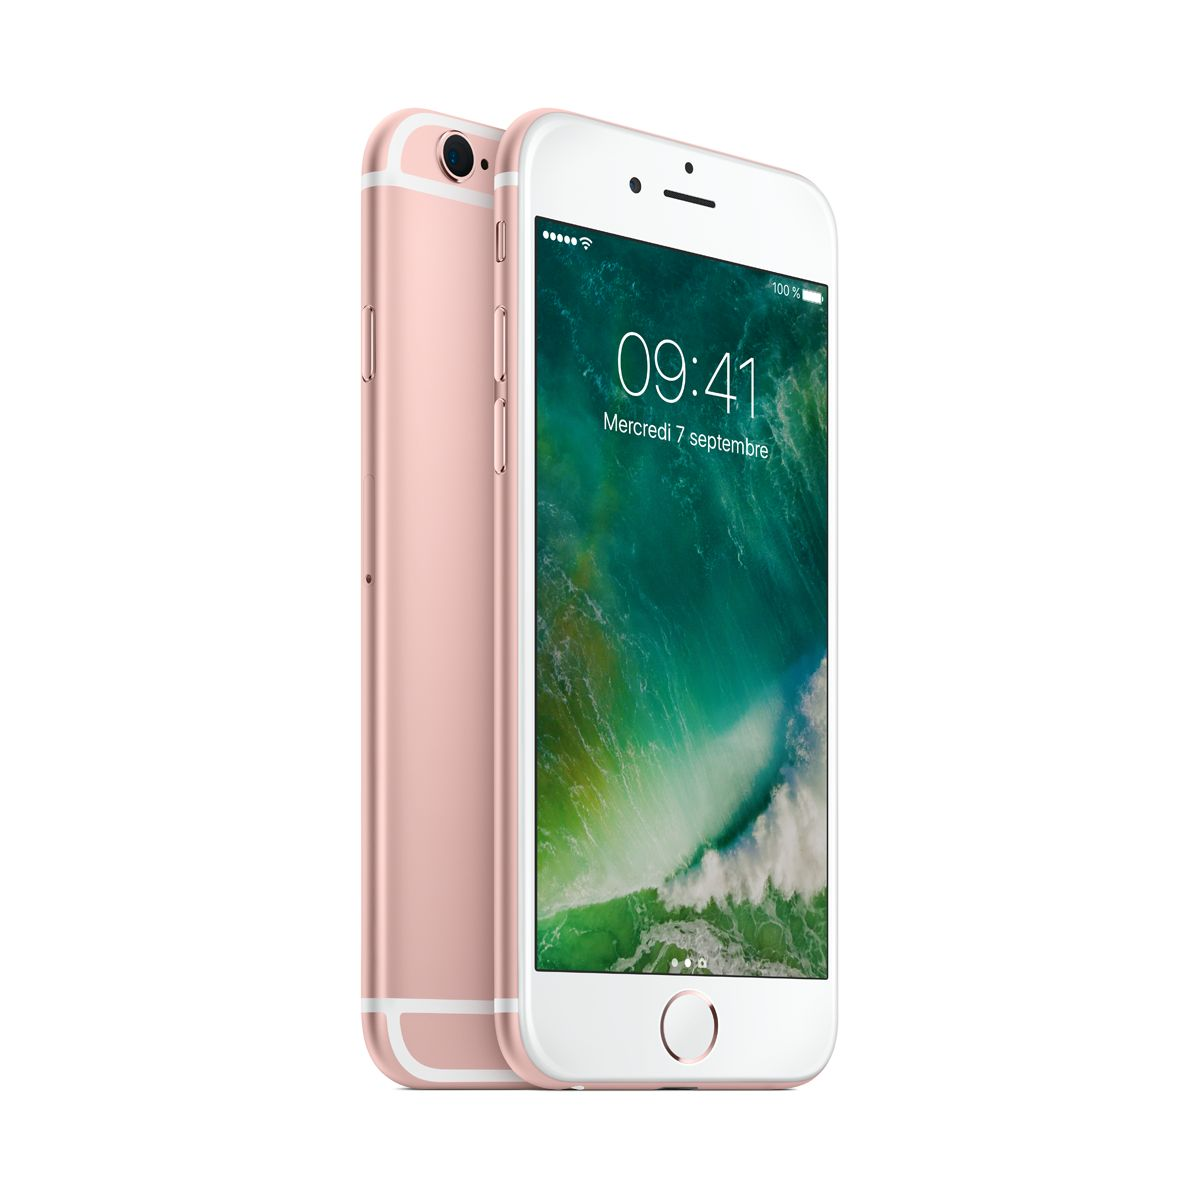 Smartphone APPLE iPhone 6s Plus Silver 32GO